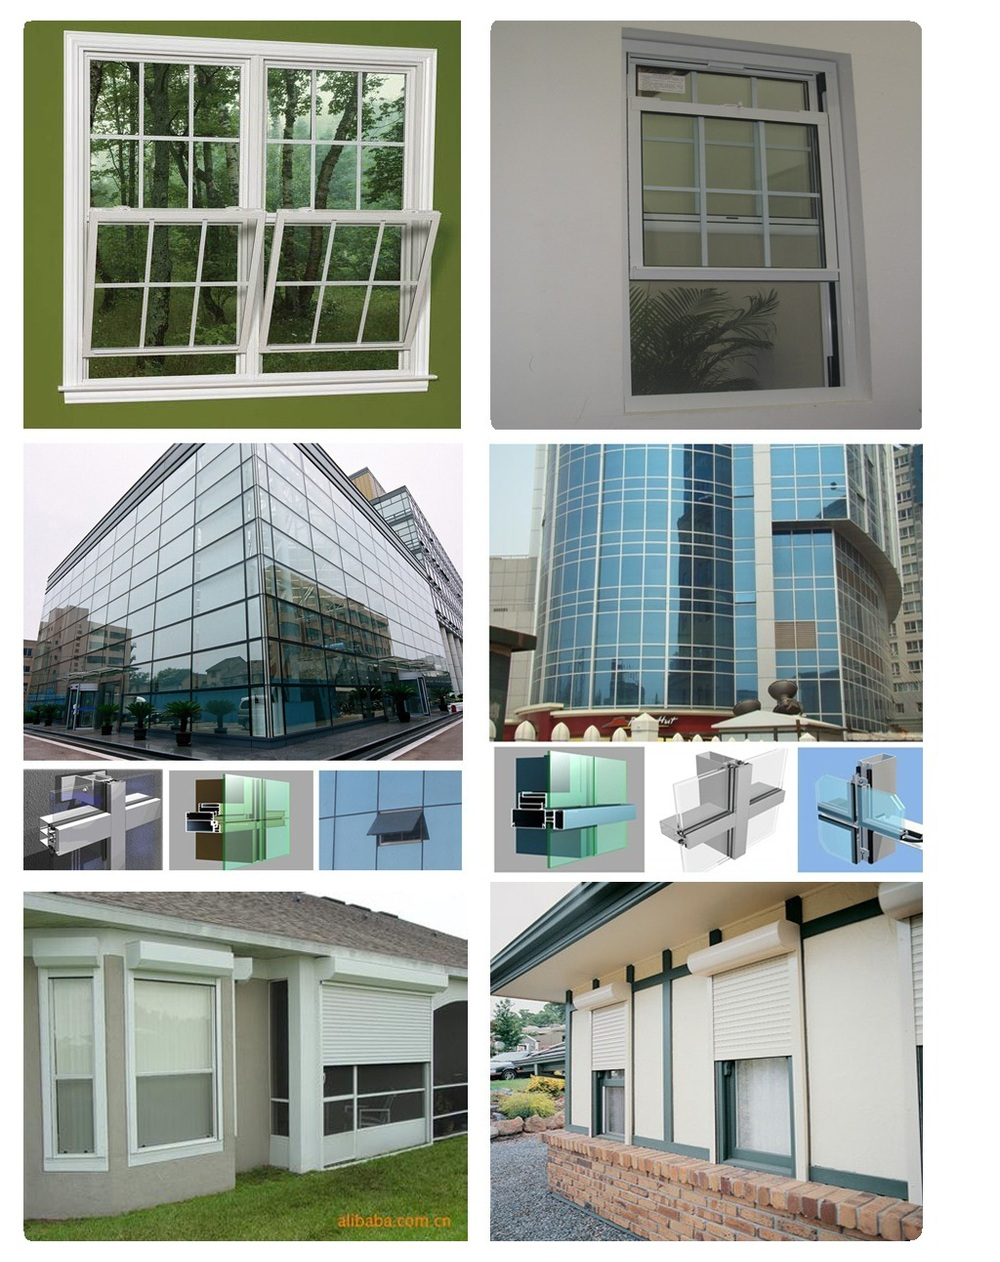 China Supplier Of Construction Building Material Of Aluminium ...